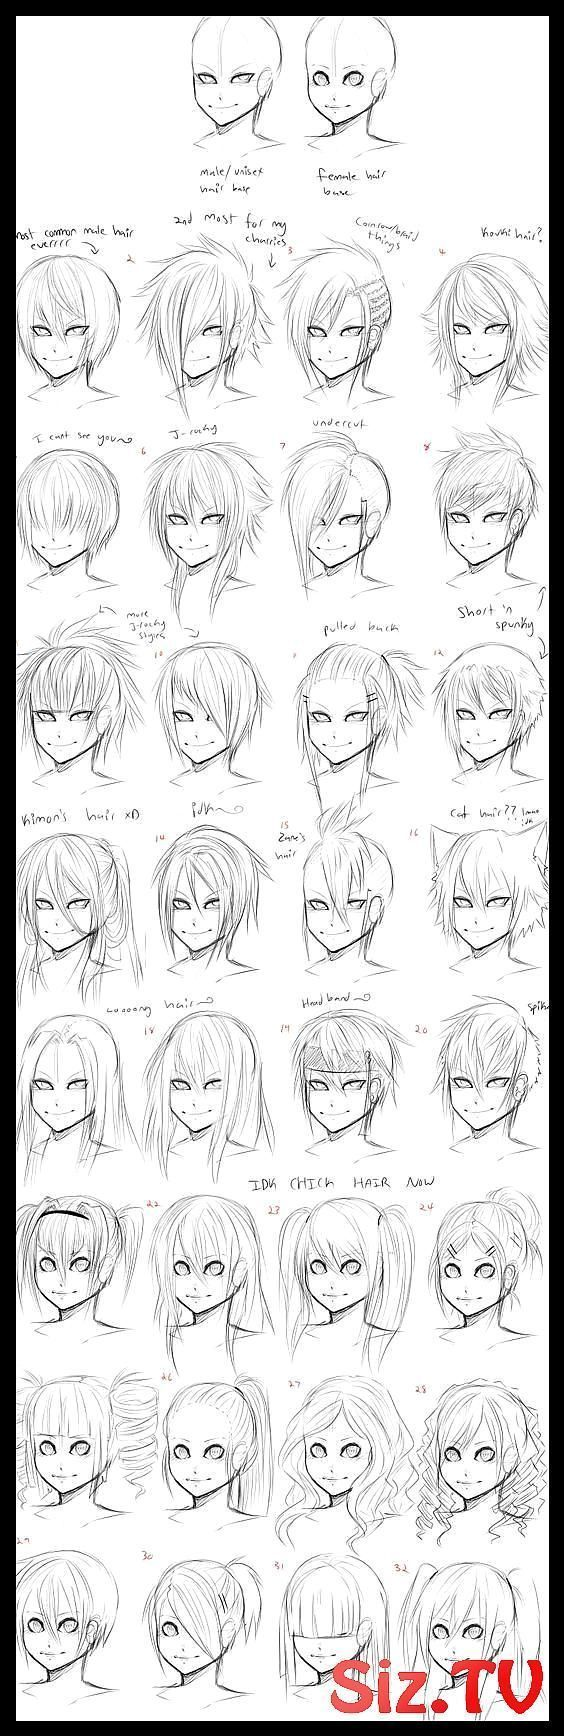 Anime Guys Hairstyles Messy Anime Guys In 2020 Quick Hairstyles Anime Hairstyles Male Anime Hair